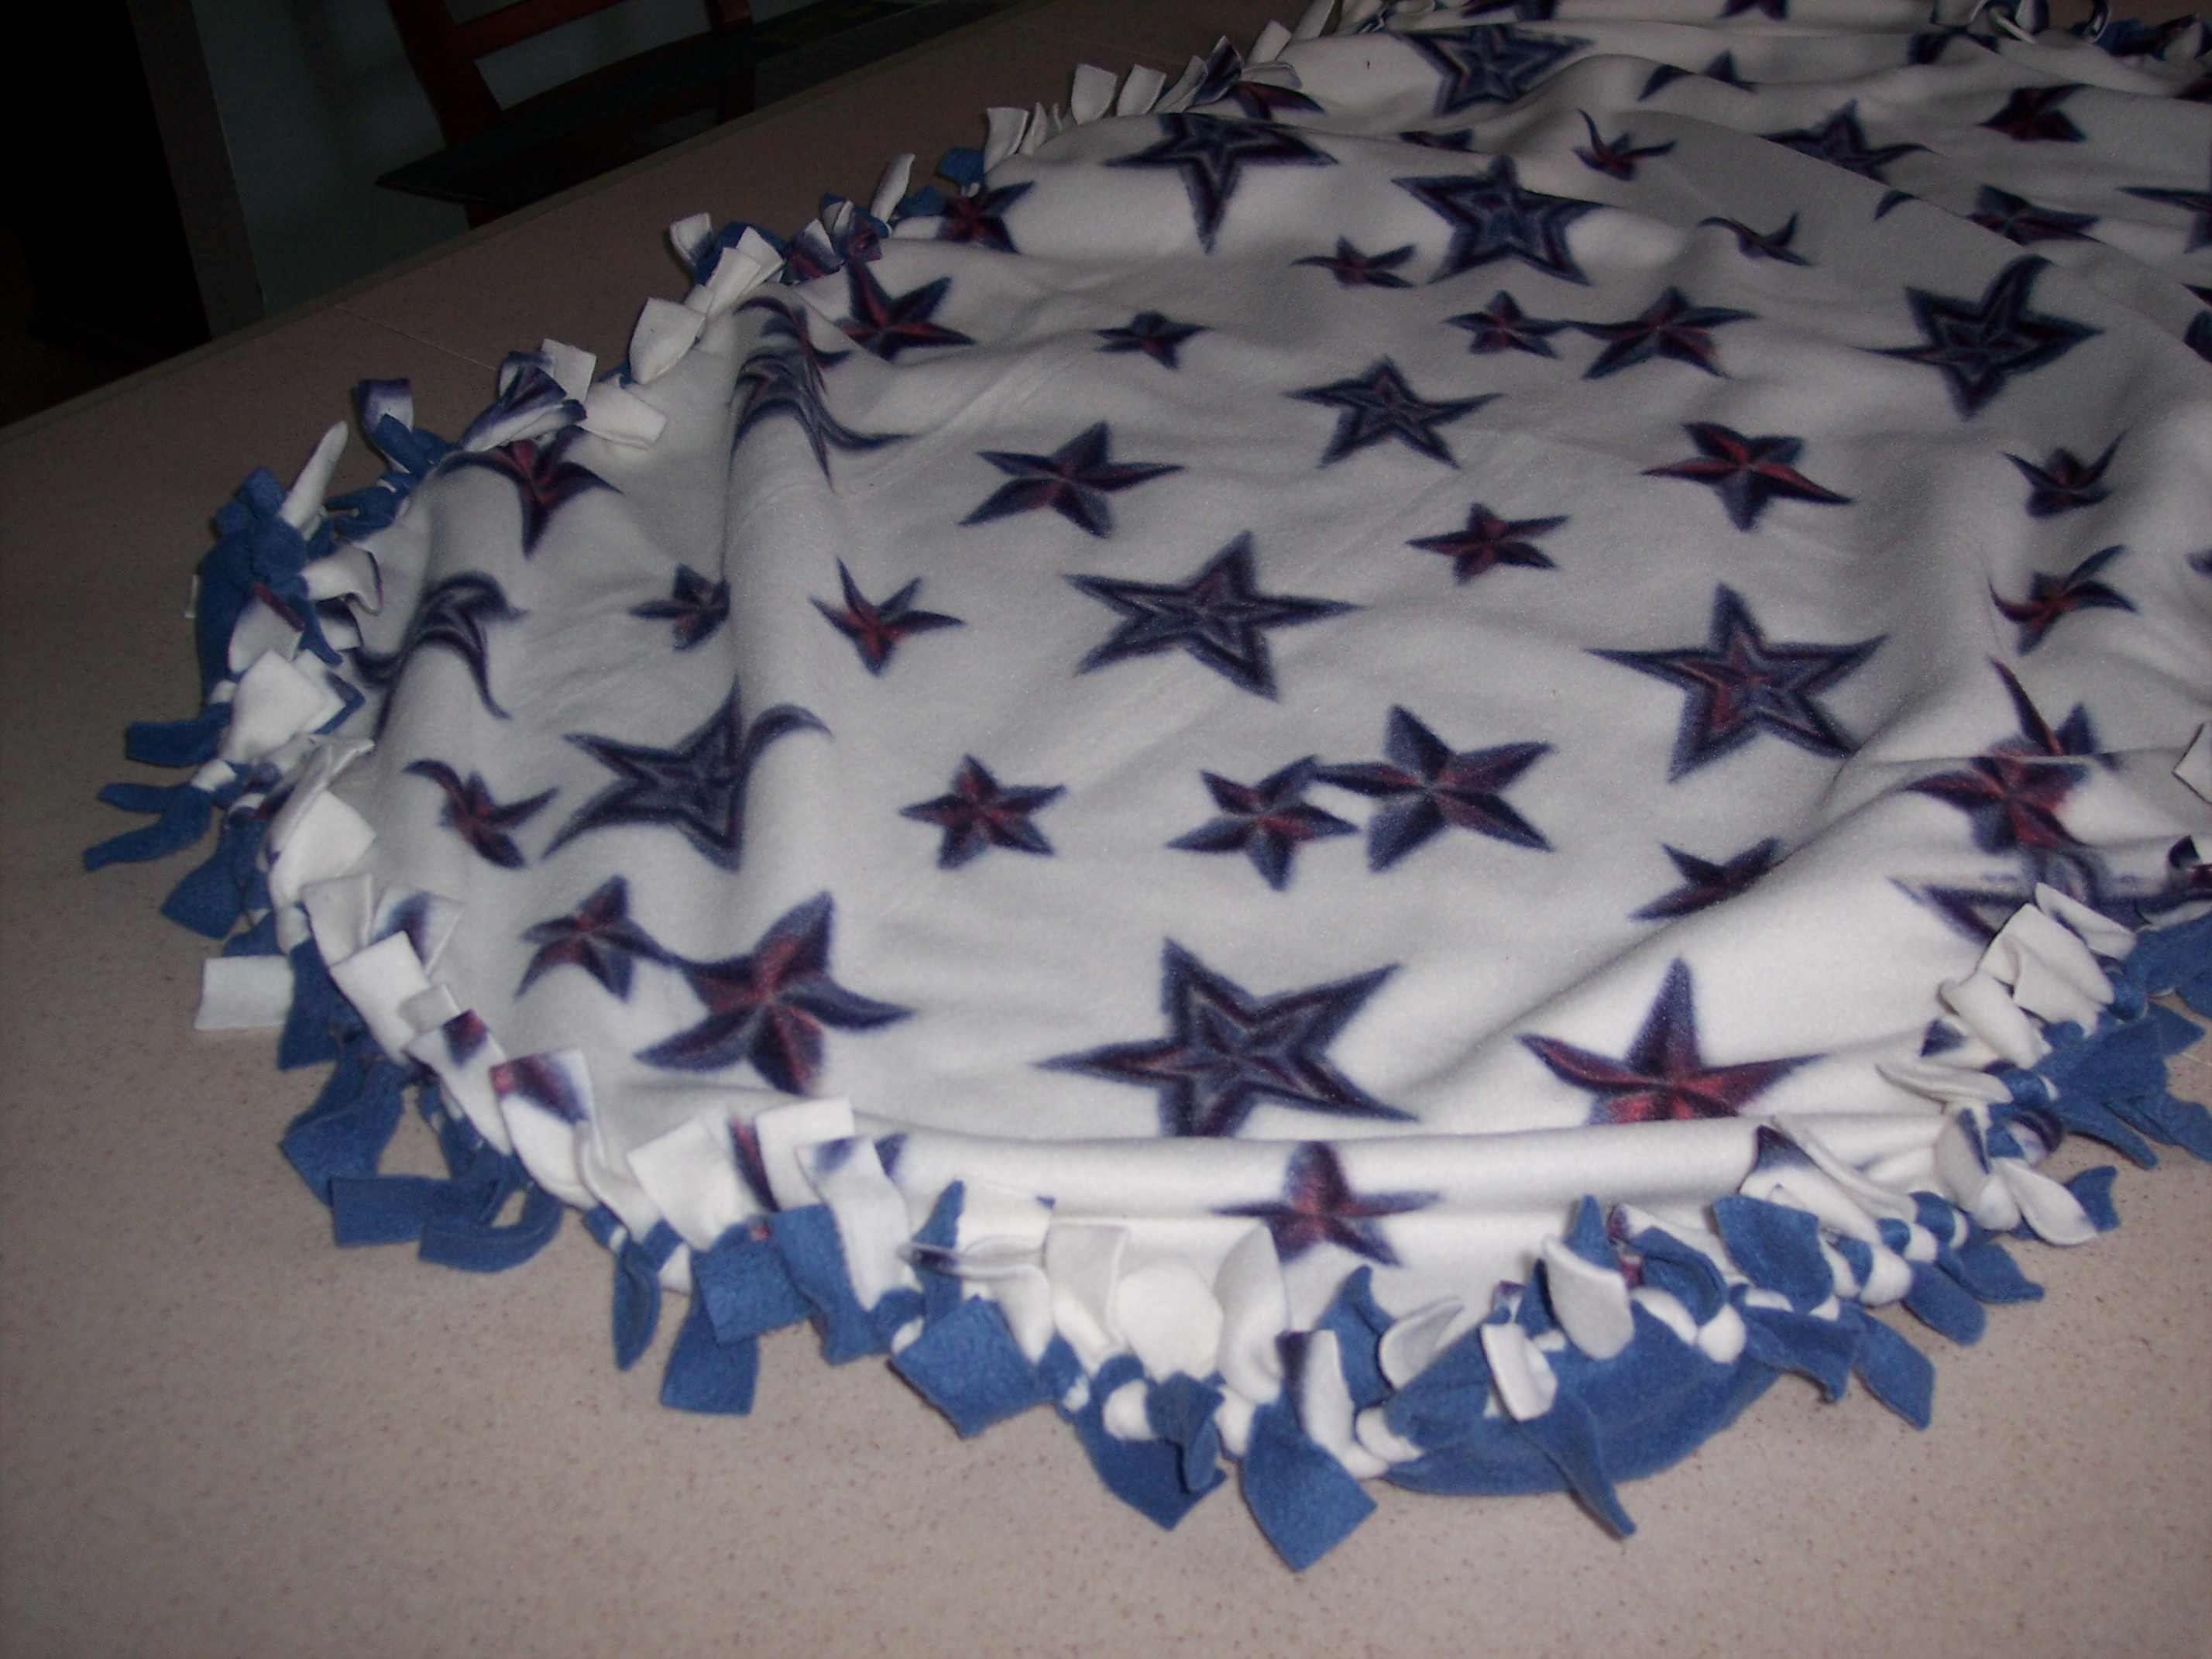 How To Make A Tied Fleece Blanket 10 Steps With Pictures Instructables